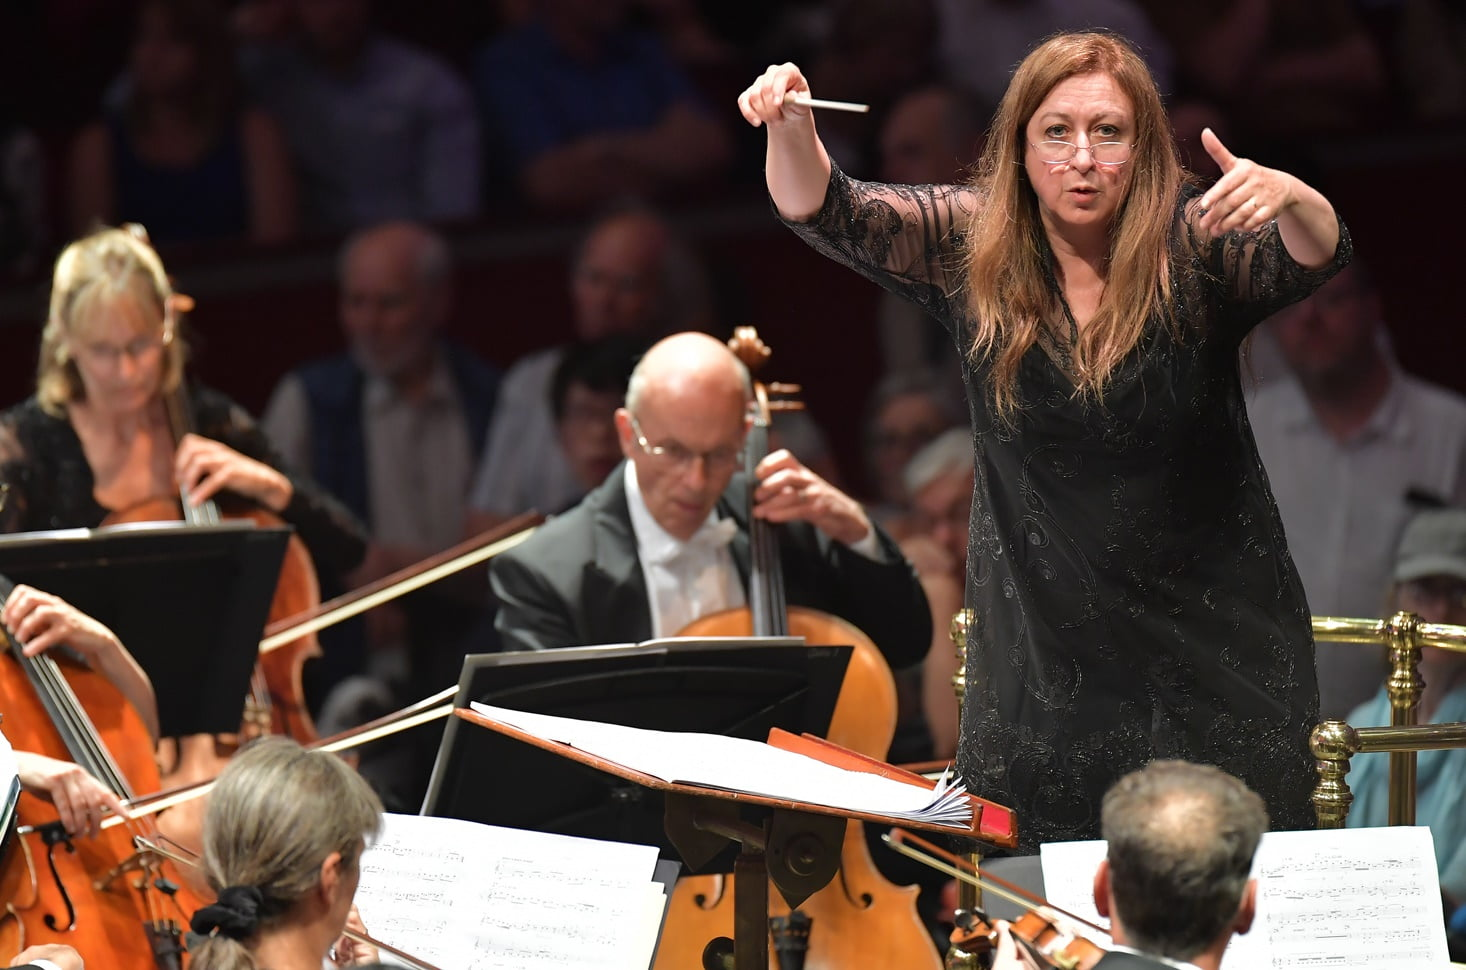 Simone Young conducting the BBC Symphony Orchestra at the BBC Proms on Wednesday 31 August 2016Photograph:  BBC/Chris Christodoulou